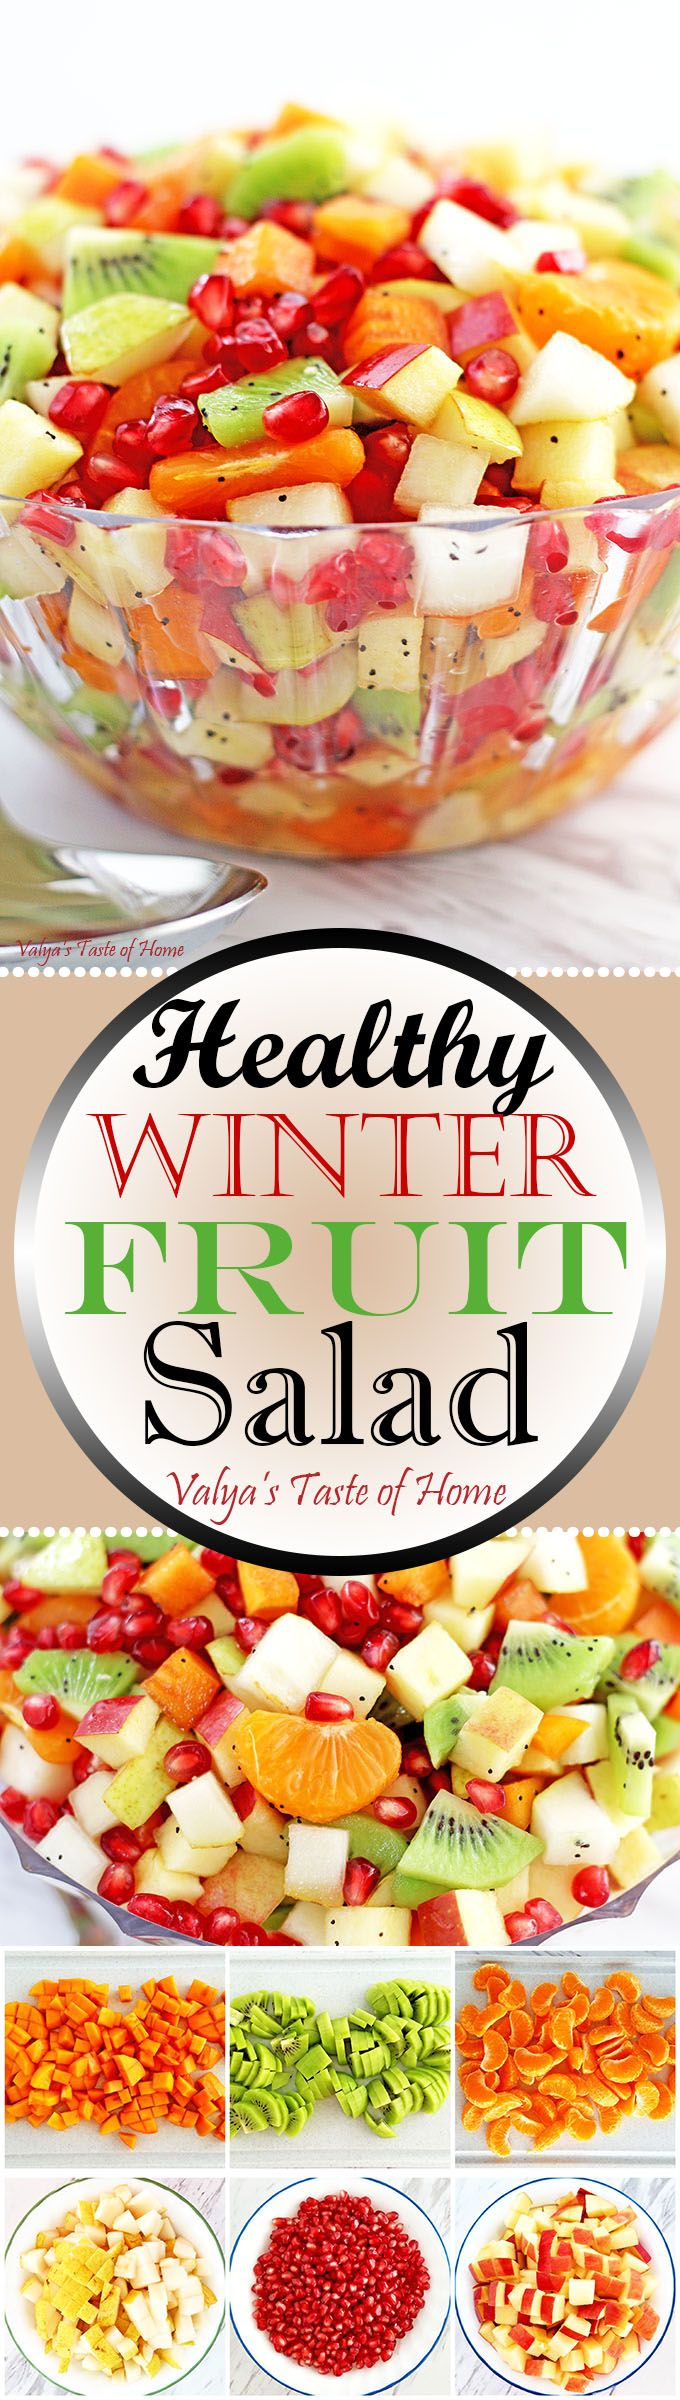 What is there not to like about this scrumptious, fresh and beautiful winter salad that is loaded with nutrients and vitamins we all need to complete our daily #fruit serving during cold weather months? This salad is so easy to make and can be a great addition to your meal as a dessert or a healthy snack any time the day.